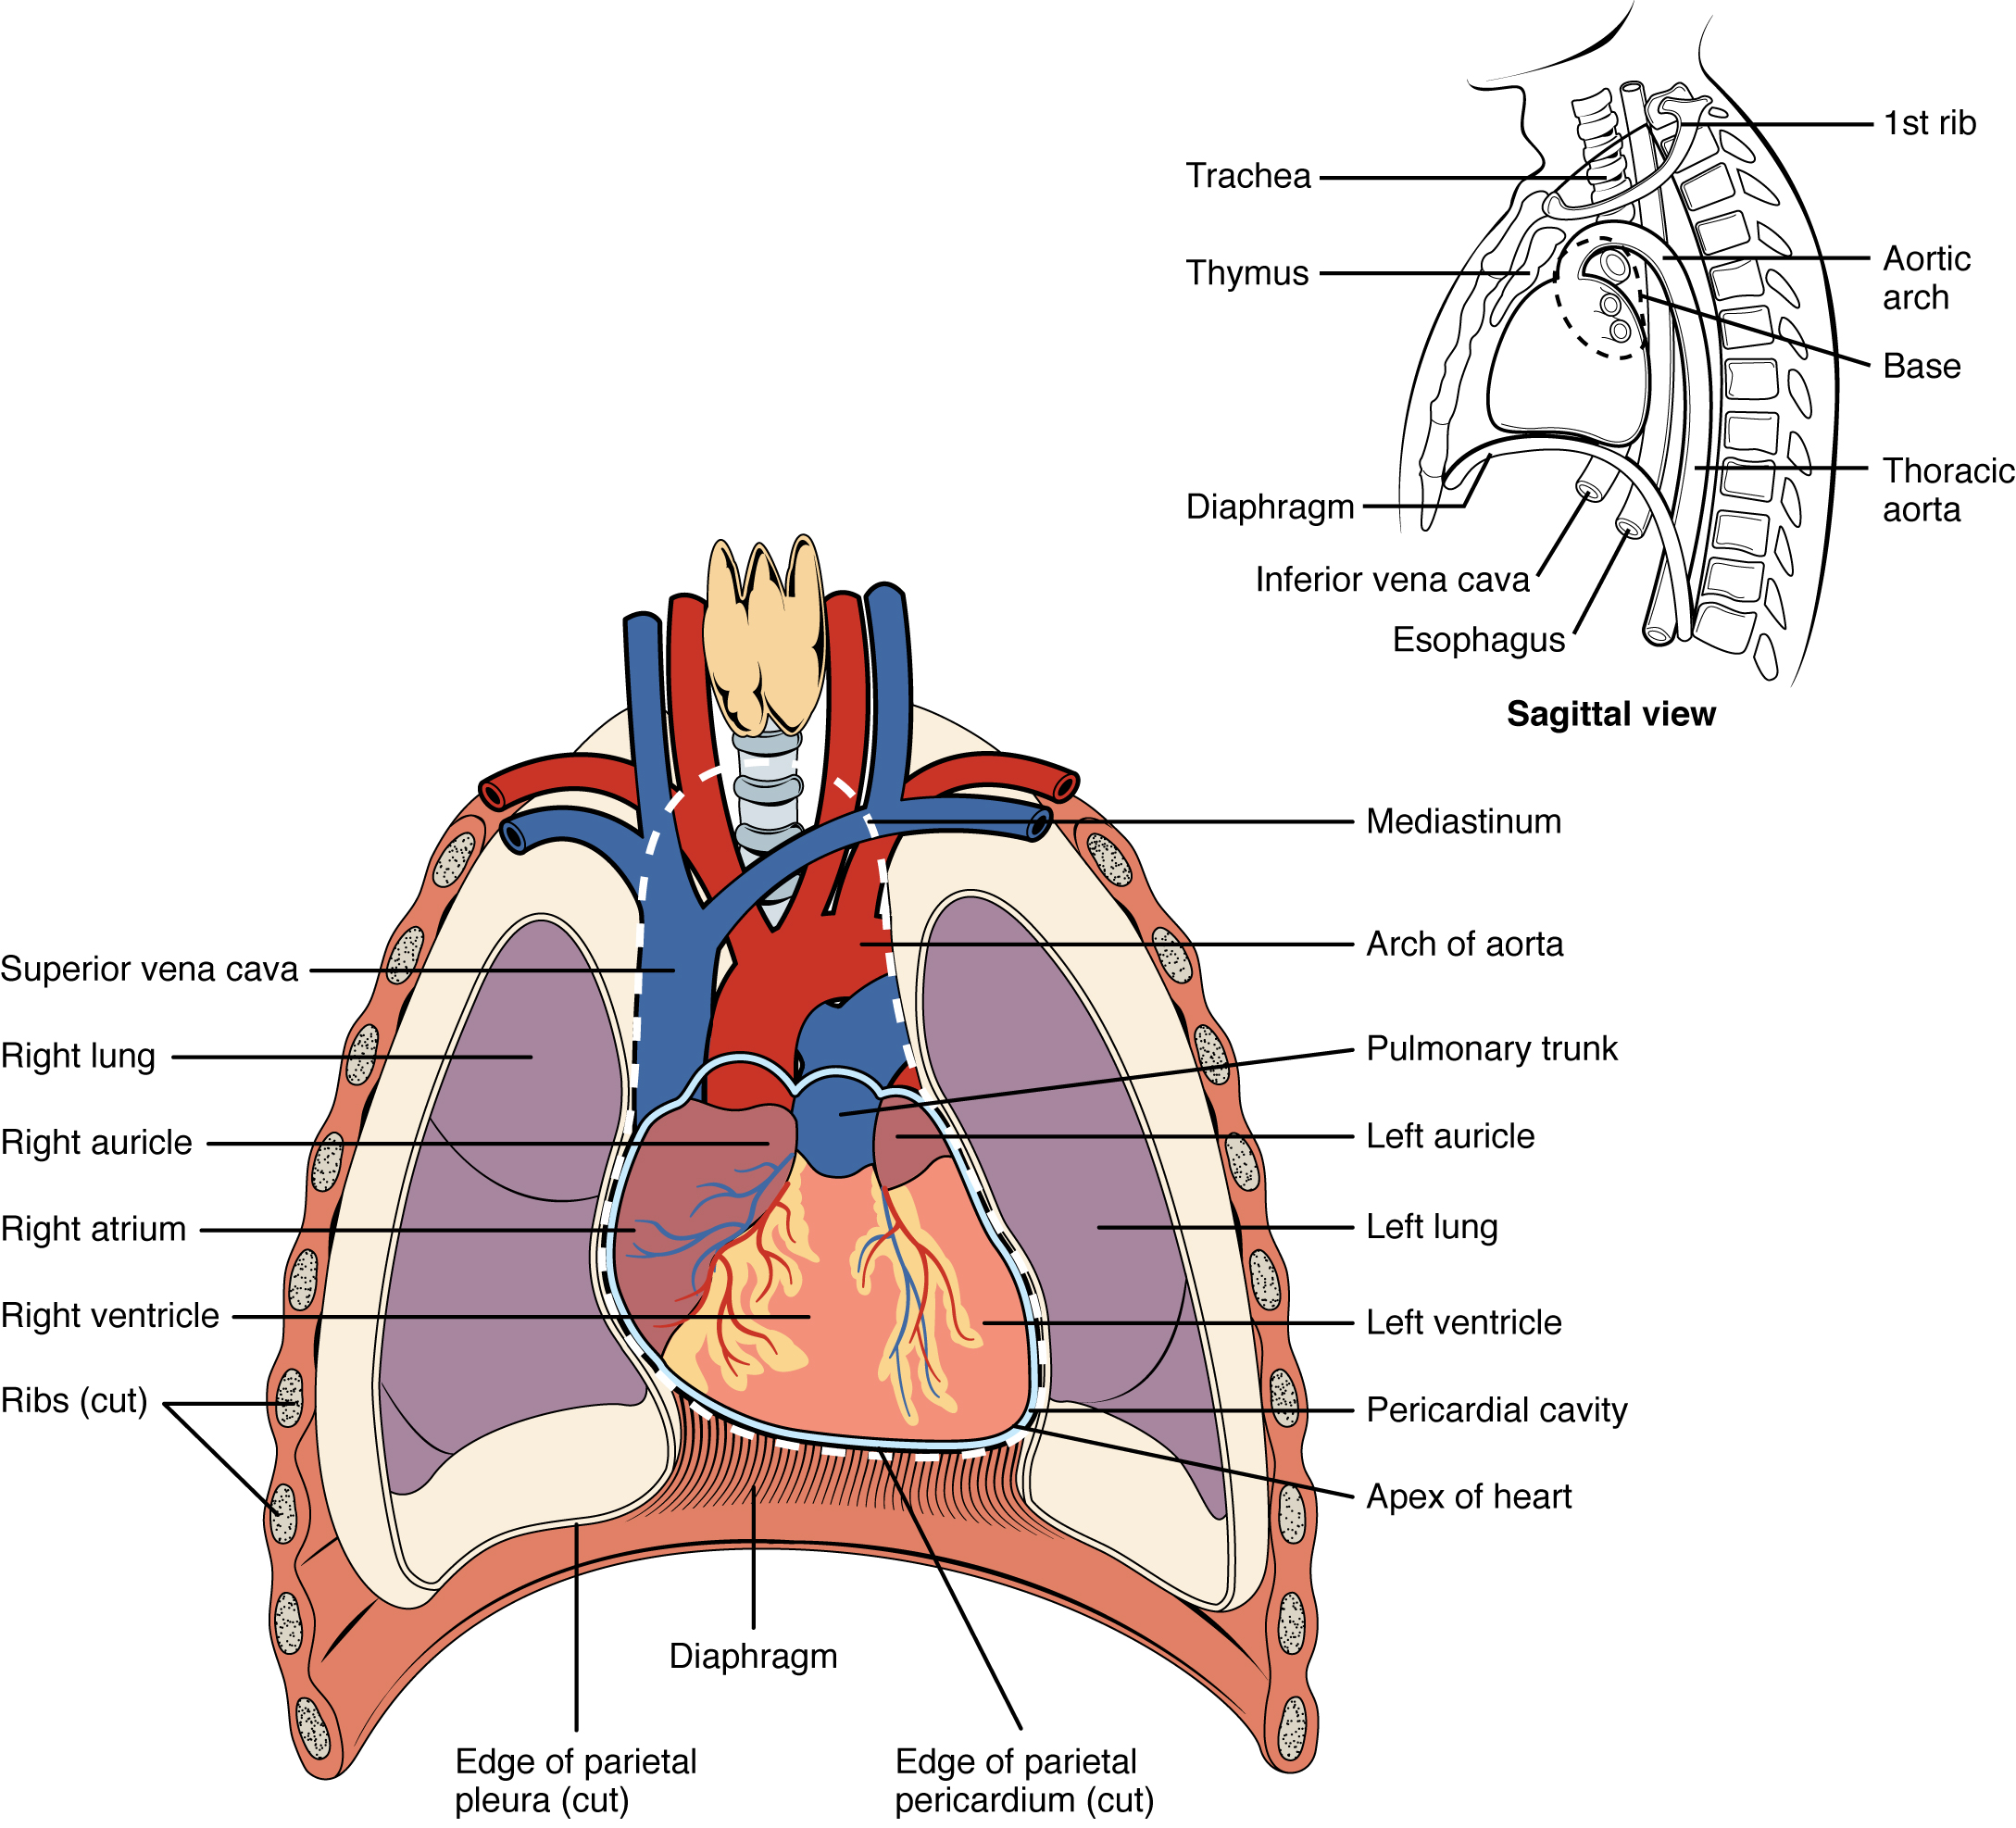 Uga anatomy and physiology 2 lab manual figure 192 position of the heart in the thorax ccuart Images